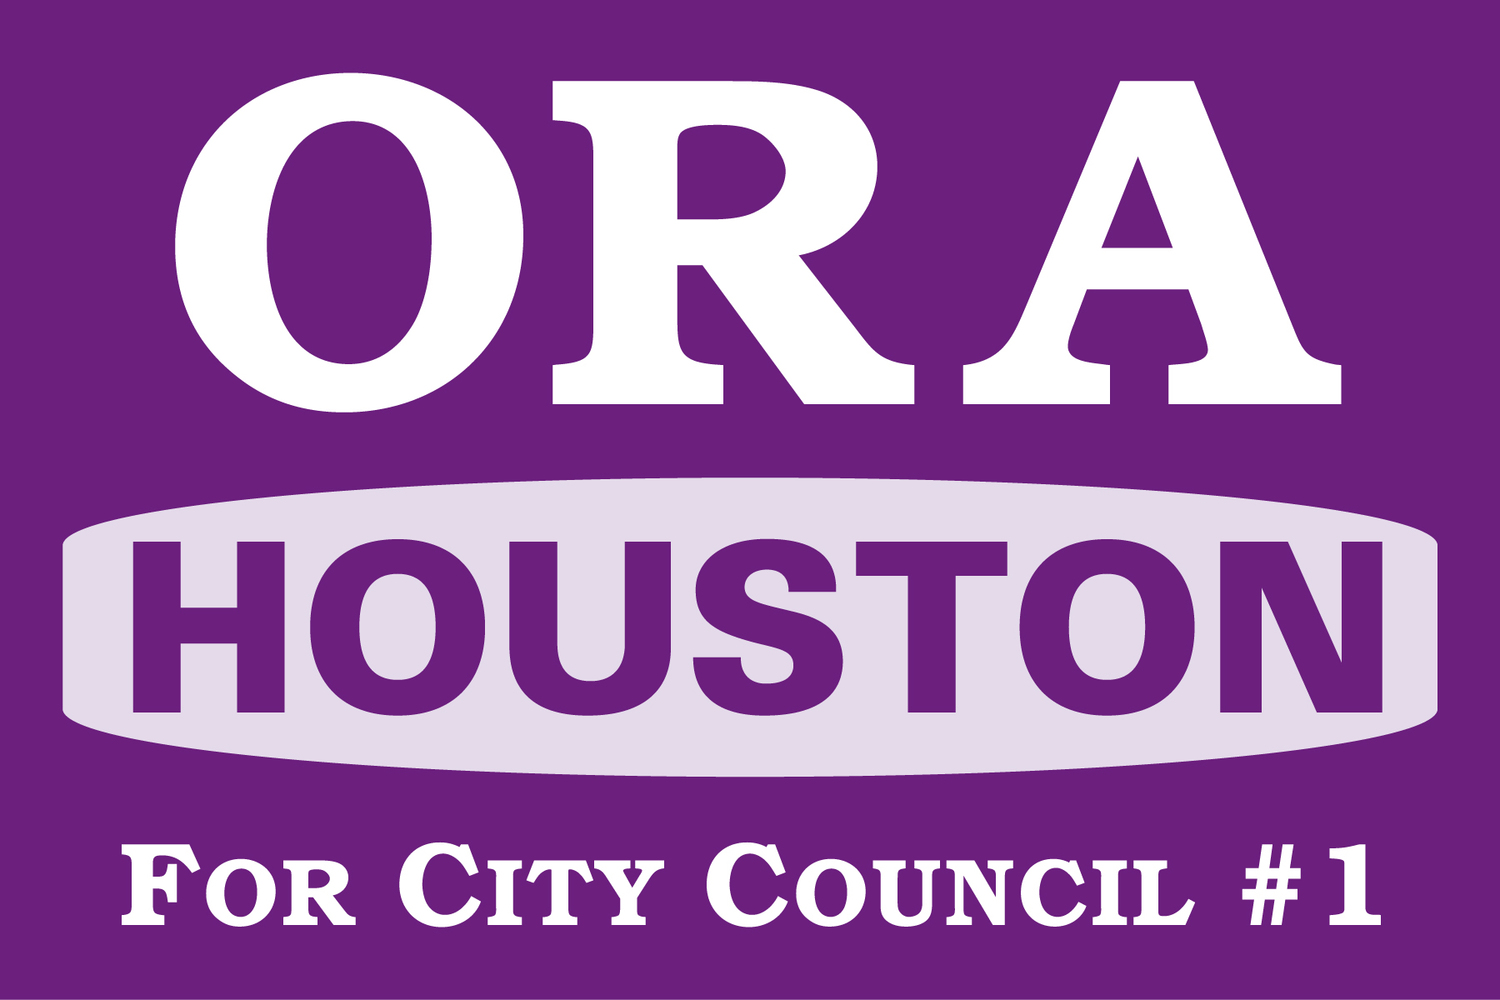 Council Member Ora Houston, District #1